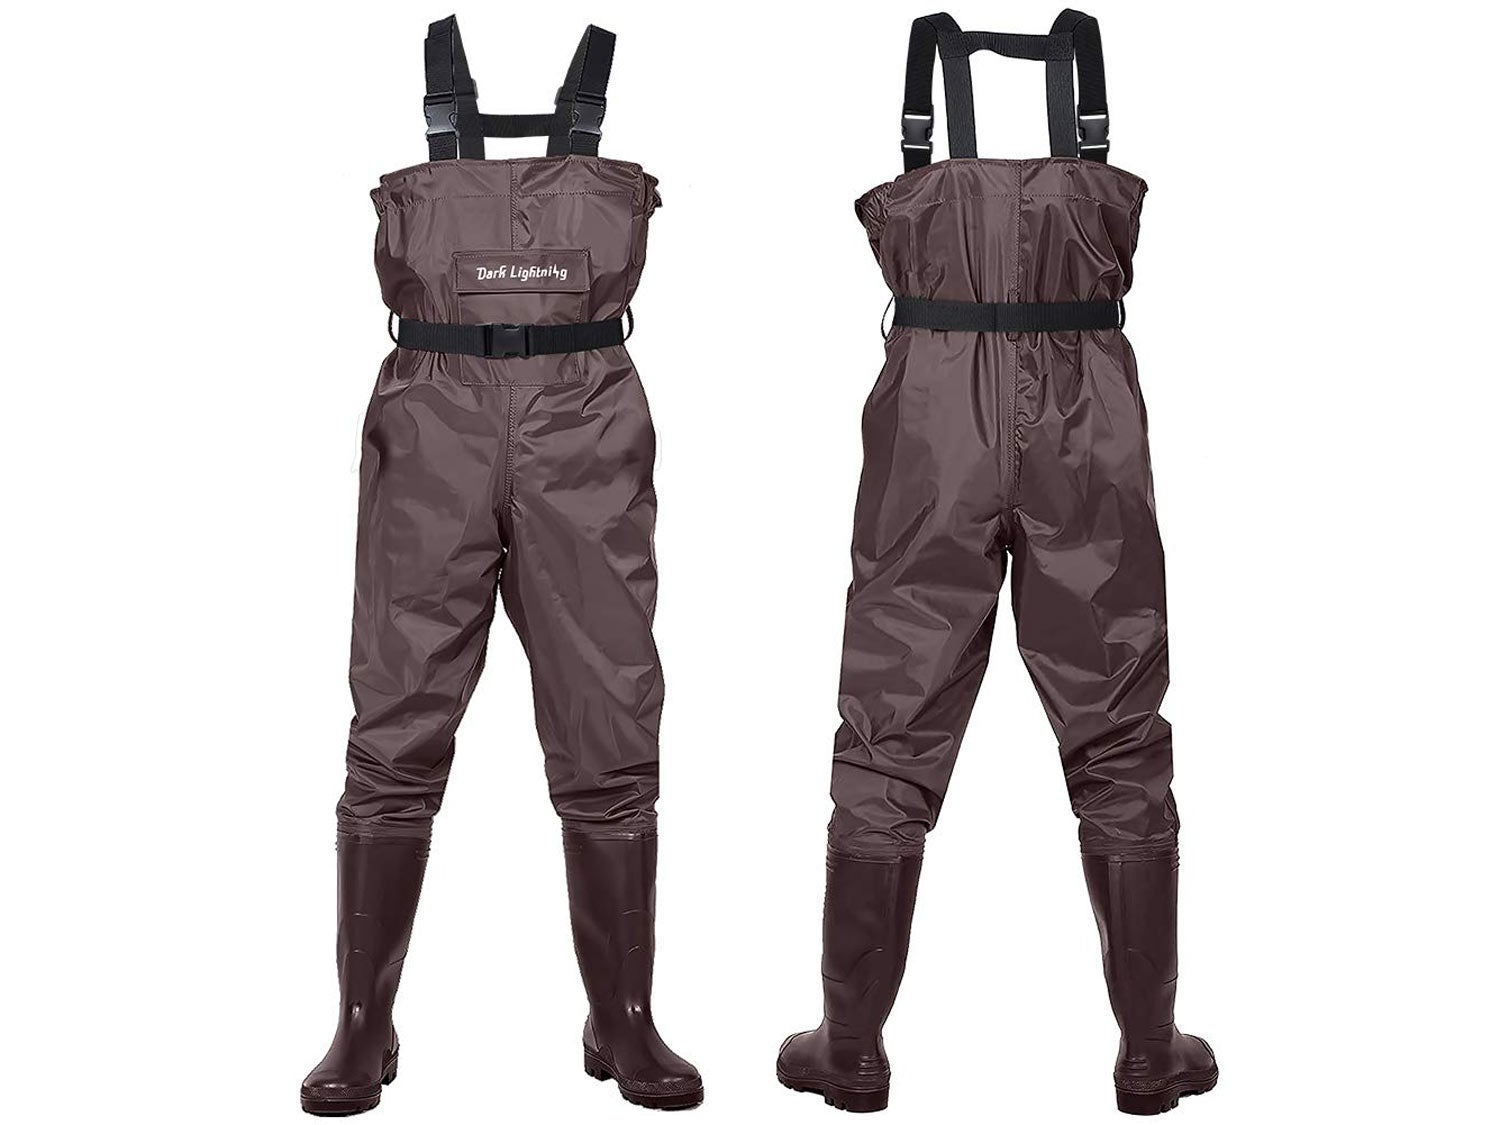 Dark Lightning Fly Fishing Waders for Men and Women with Boots